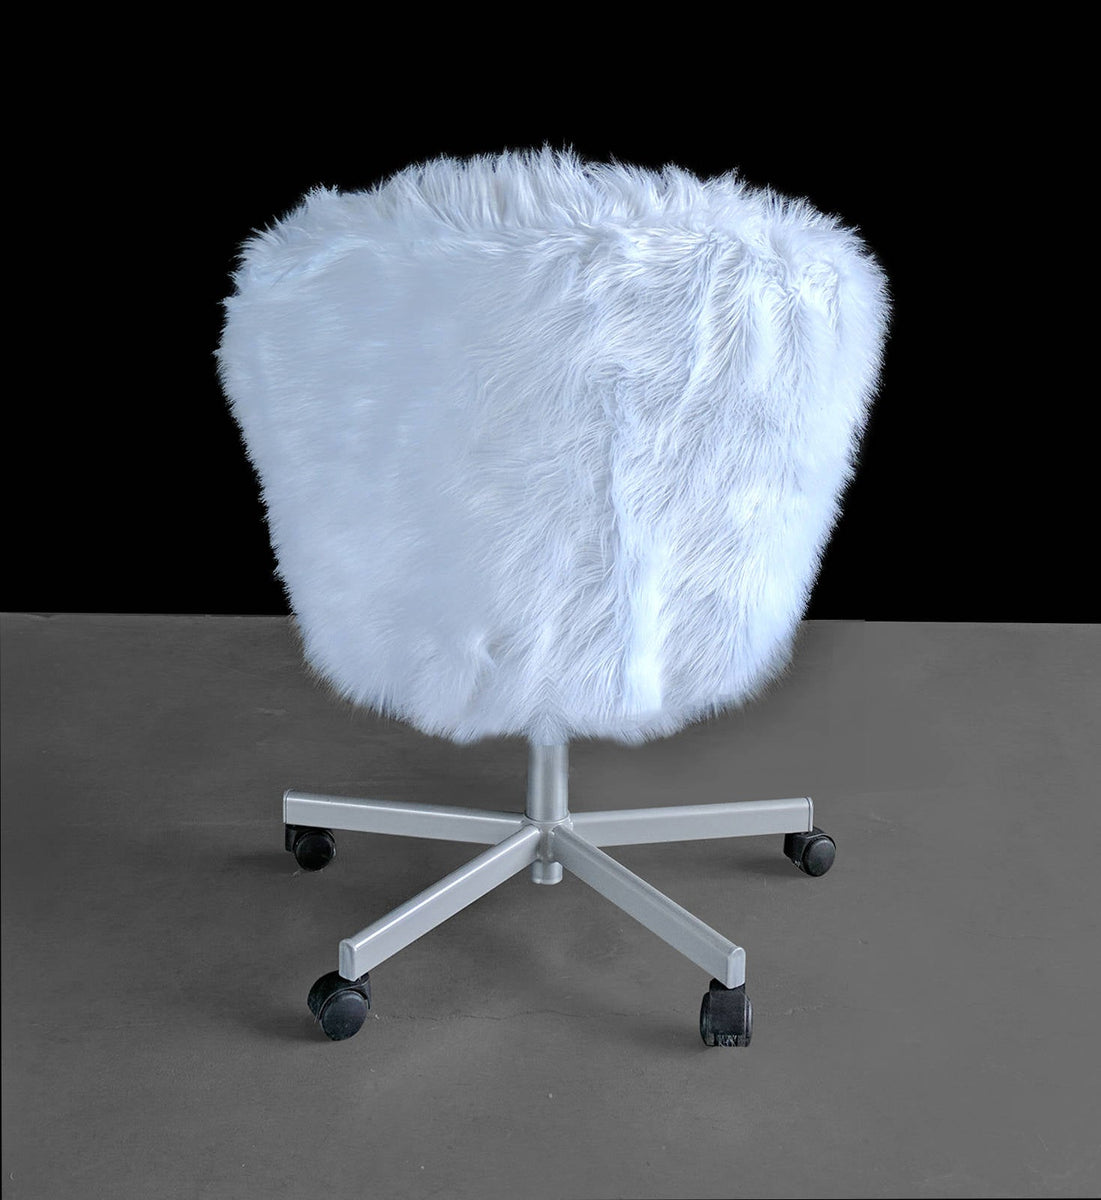 Picture of: Ikea White Fur Skruvsta Chair Slip Cover Affordable Designer Custom Handmade Trendy Fashionable Locally Made High Quality